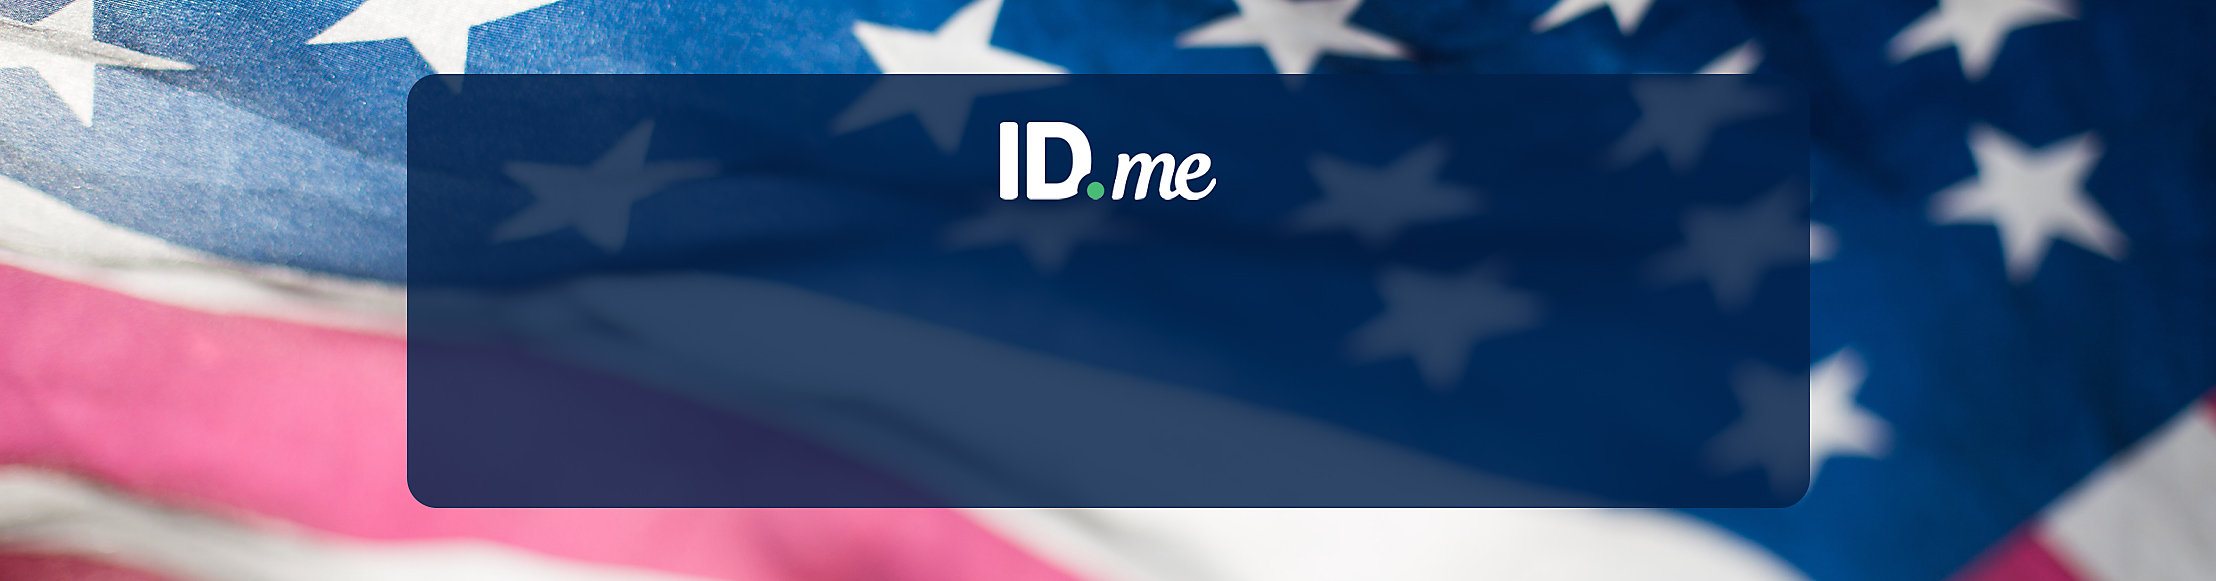 10% Military Discount with ID.Me validation